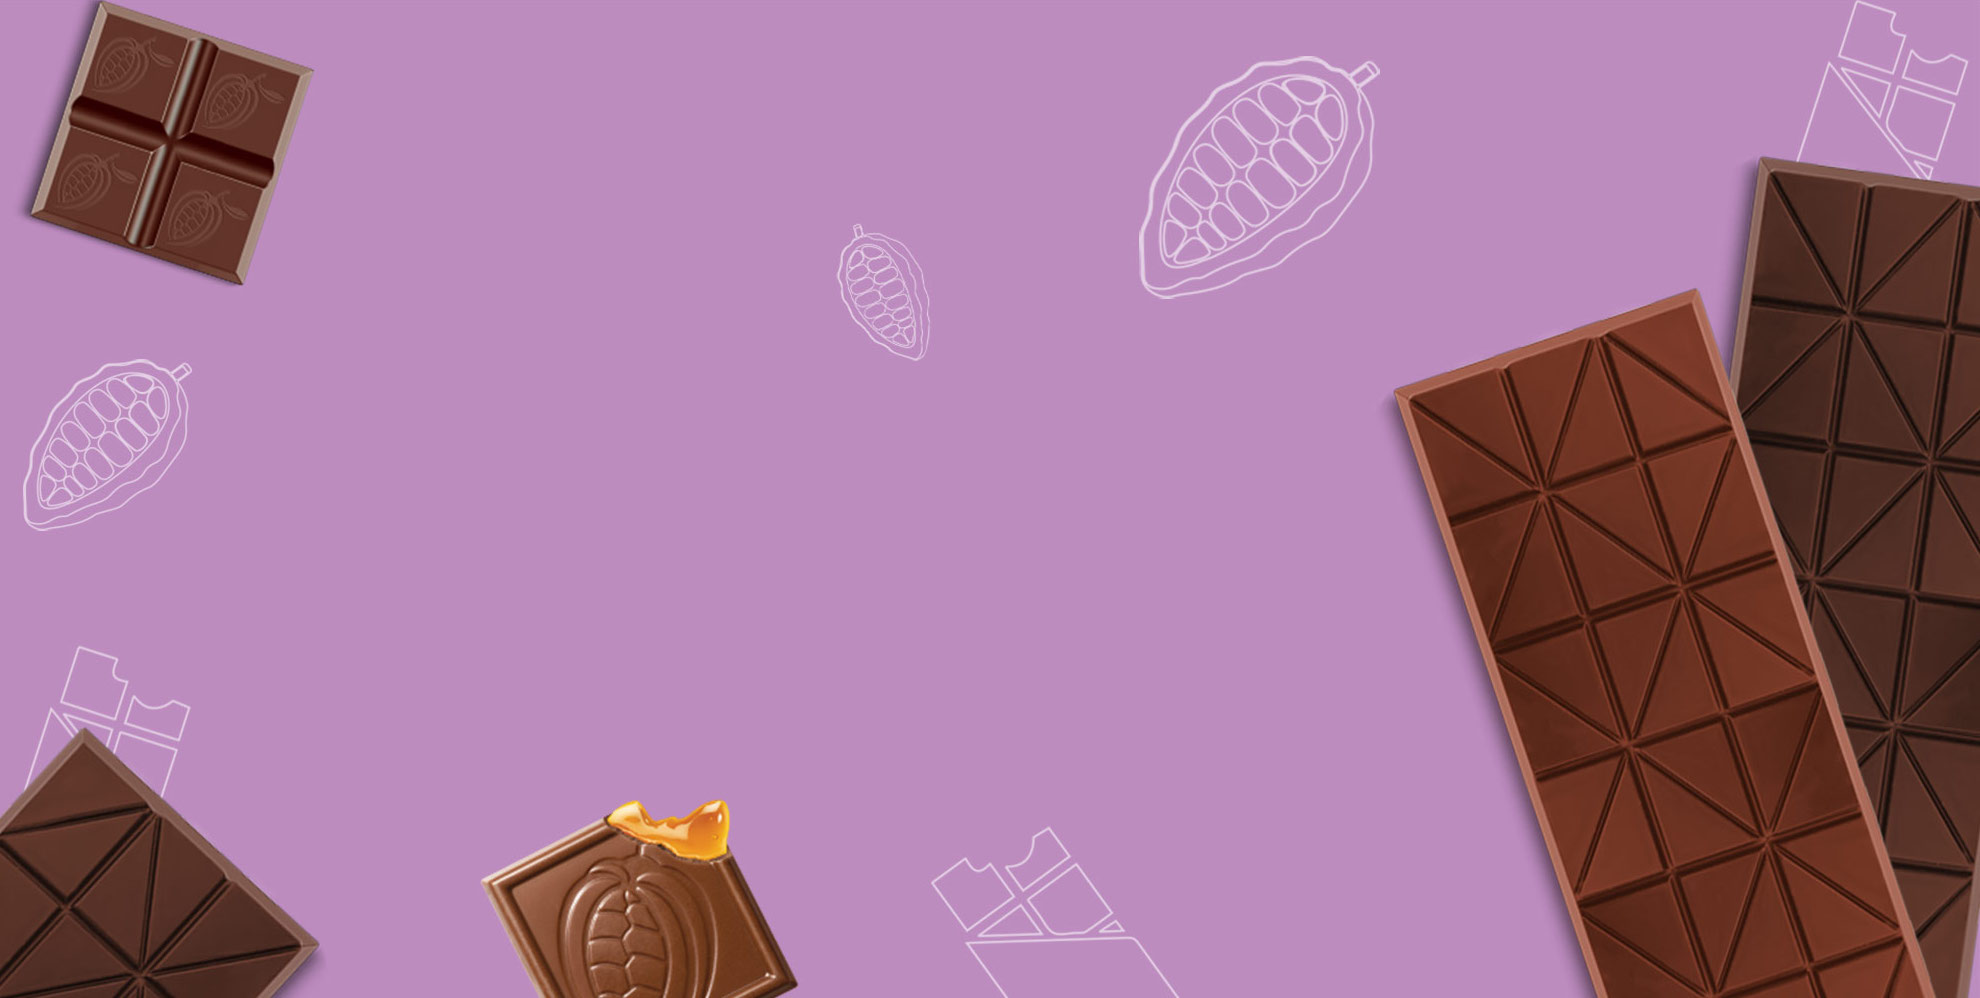 We're better - We're the chocolate your great grandmother would've made if she made chocolate.